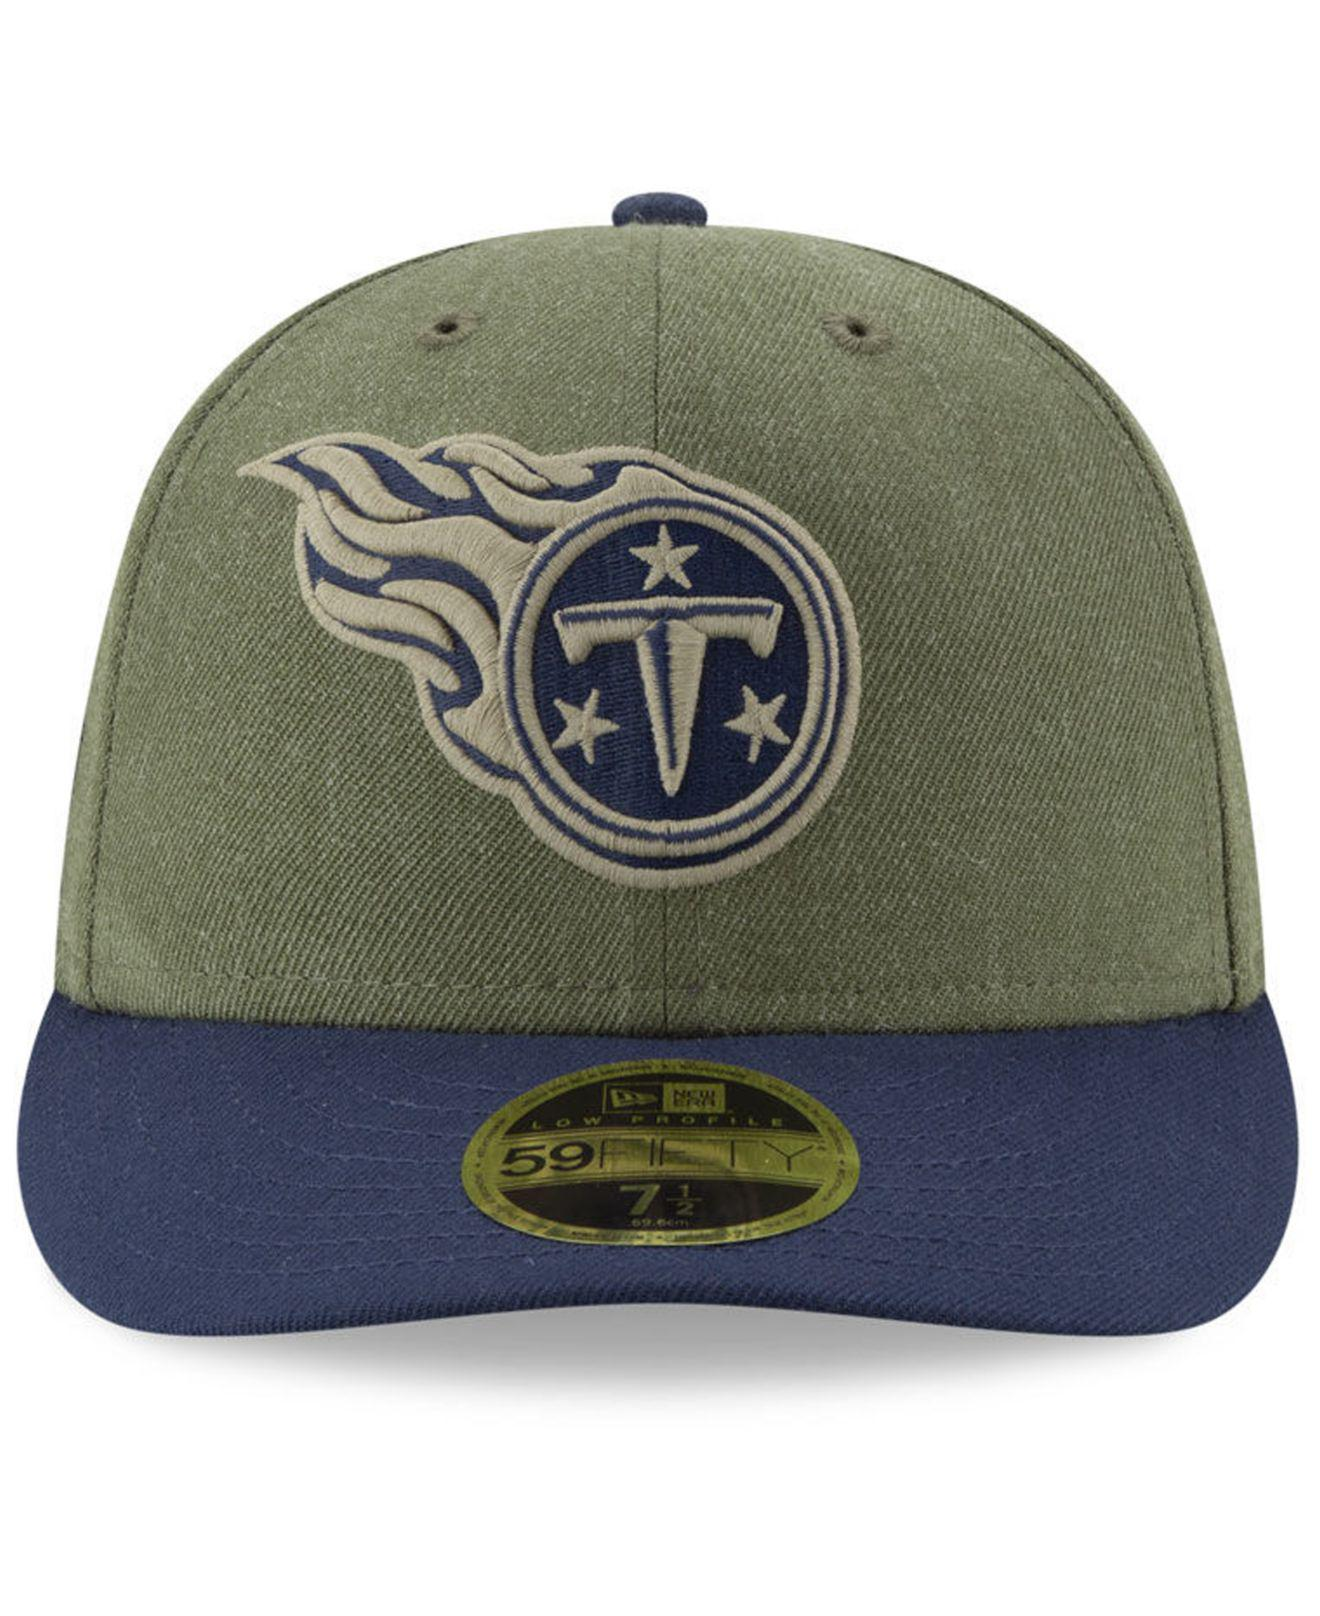 Lyst - Ktz Tennessee Titans Salute To Service Low Profile 59fifty Fitted  Cap 2018 in Green for Men 8fd7fe70c